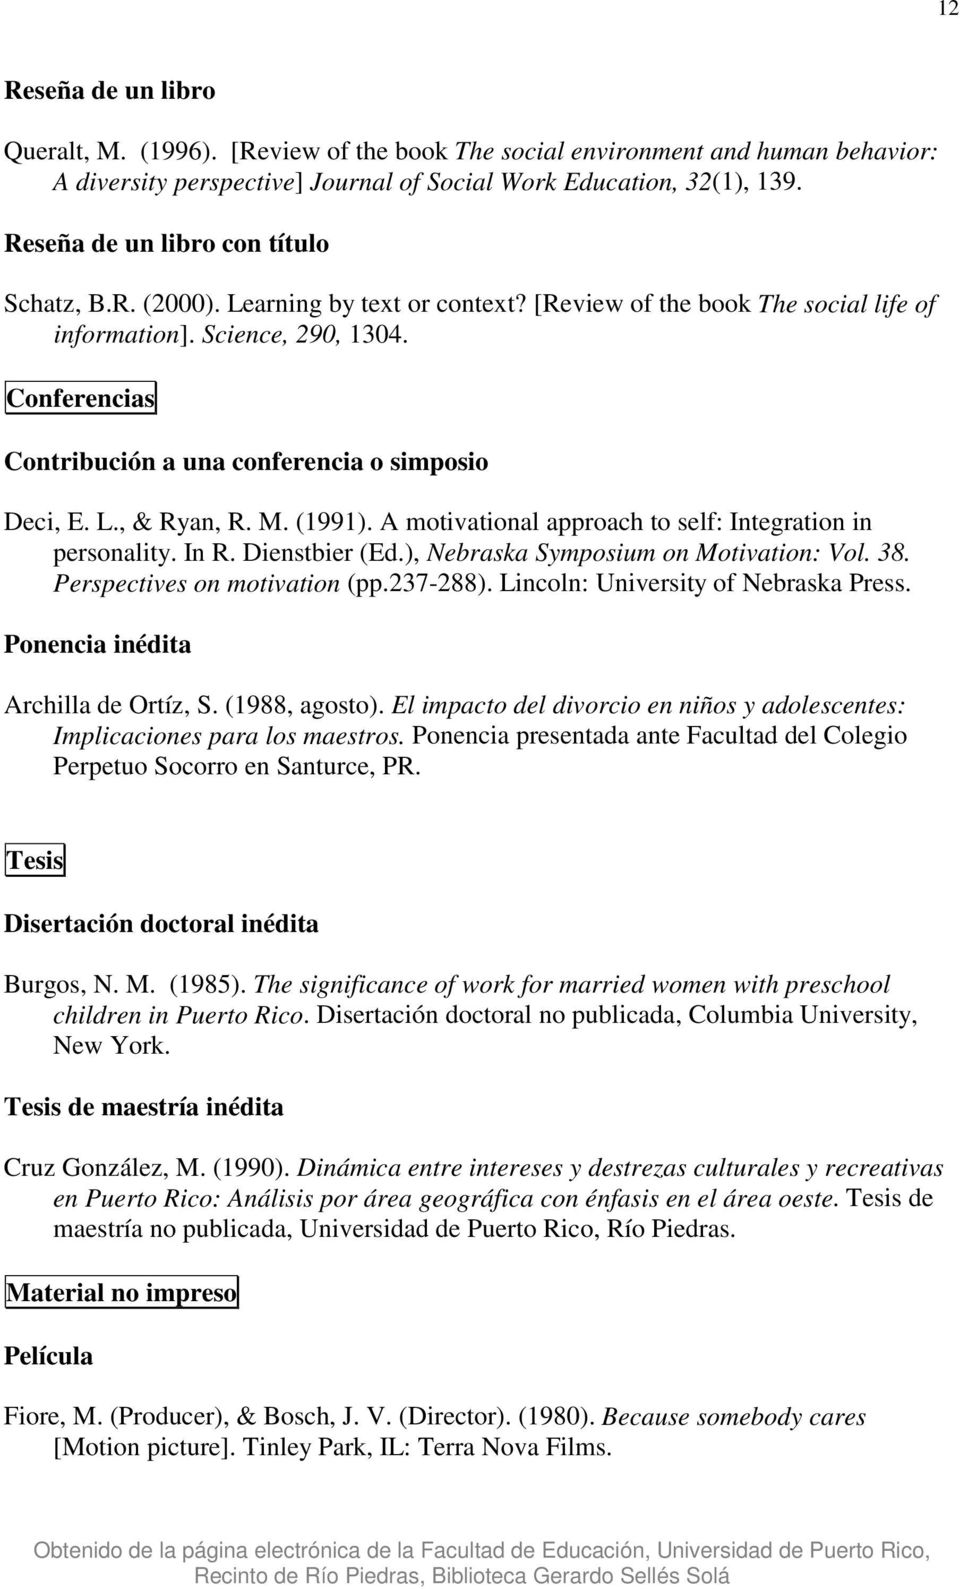 Conferencias Contribución a una conferencia o simposio Deci, E. L., & Ryan, R. M. (1991). A motivational approach to self: Integration in personality. In R. Dienstbier (Ed.